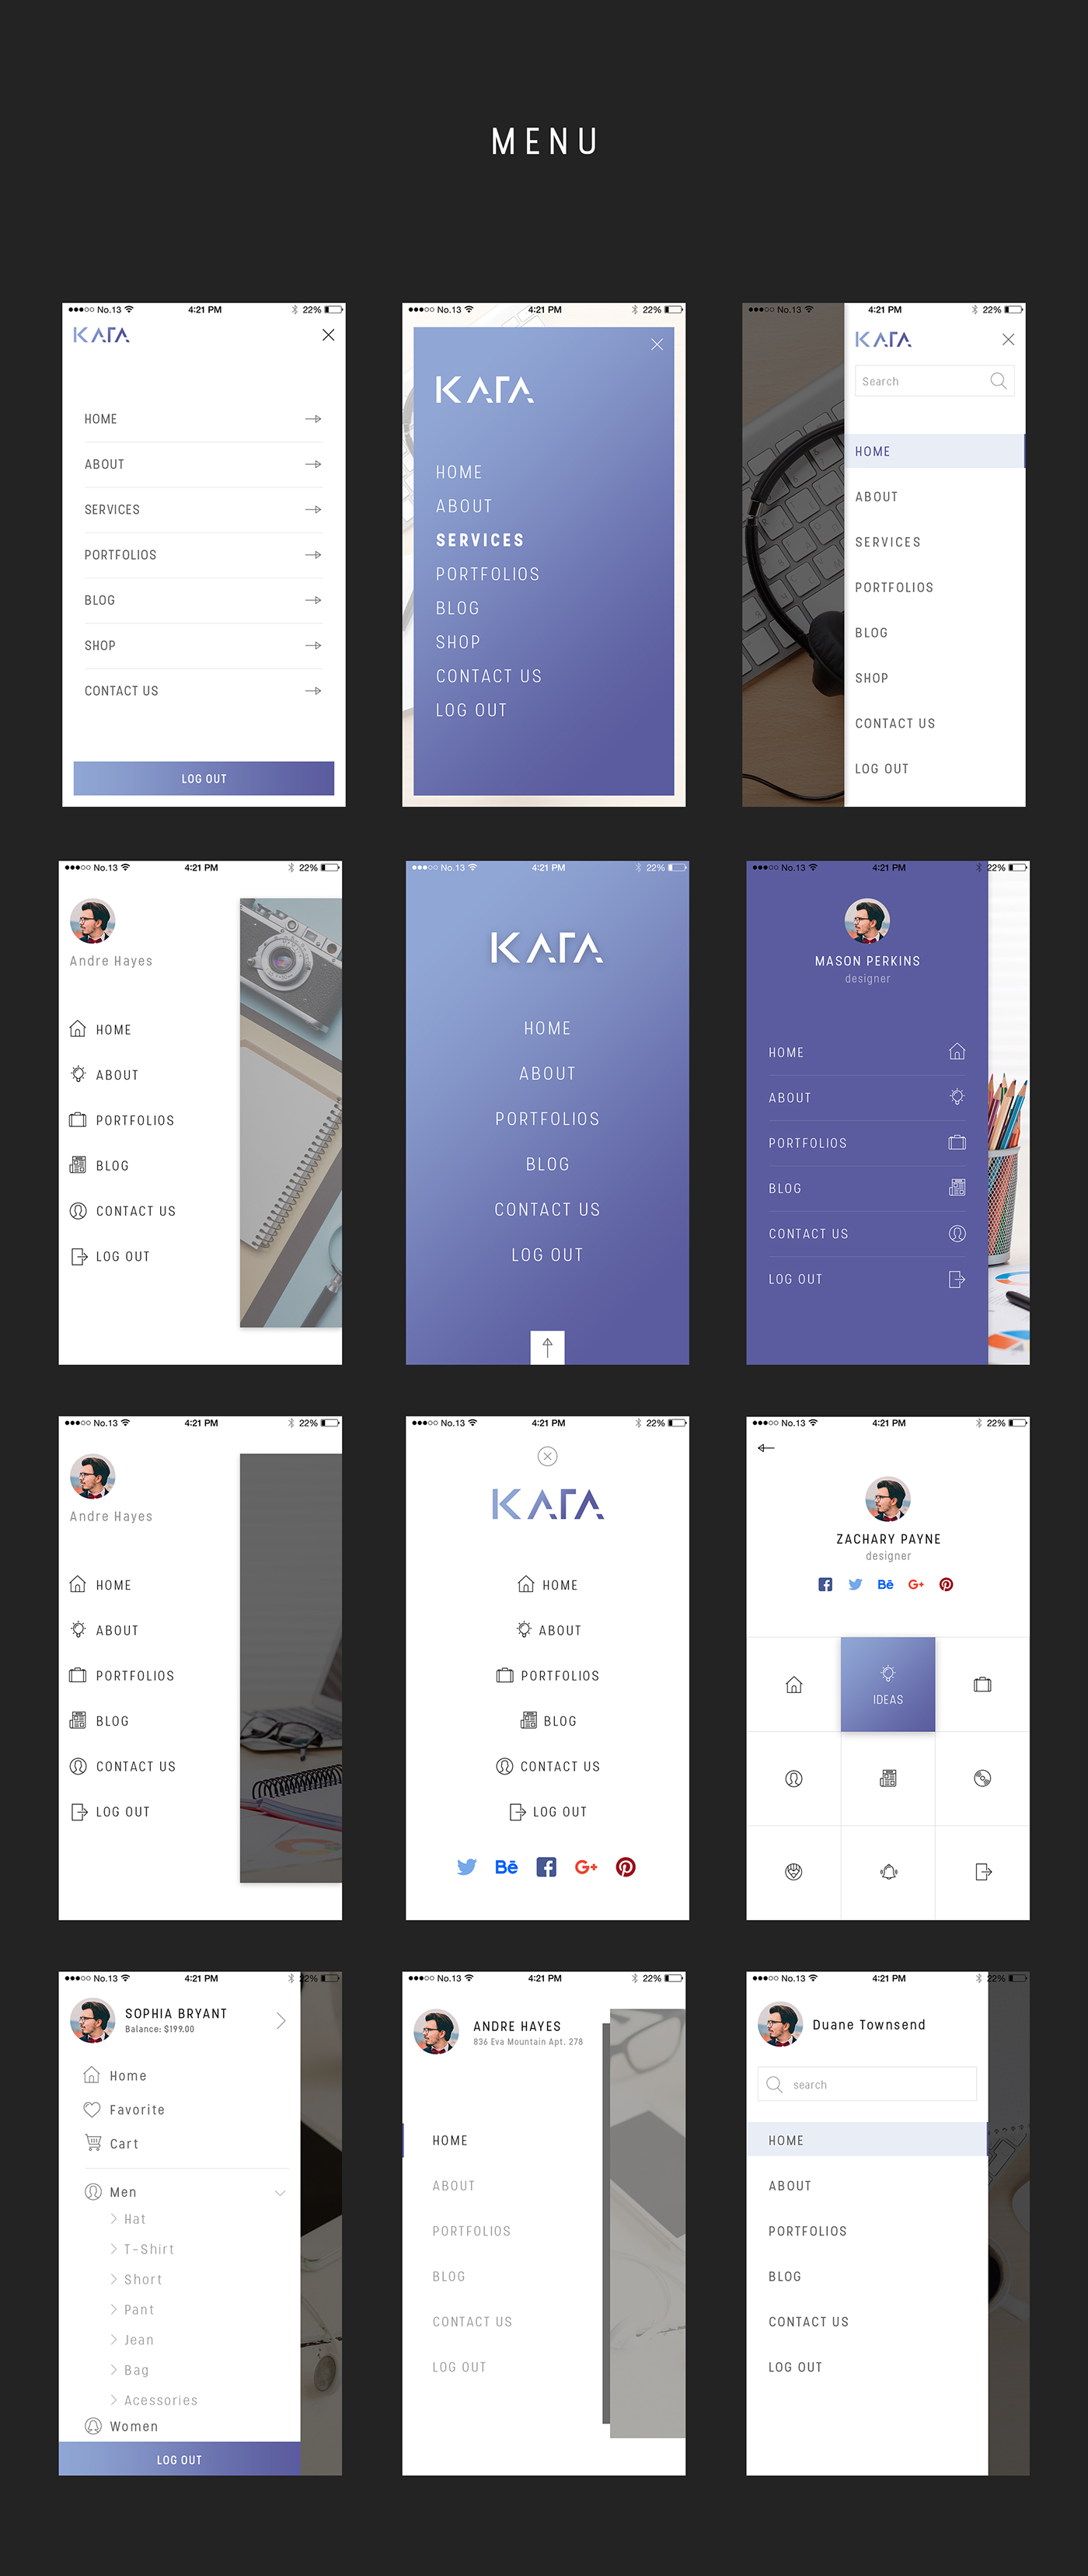 Kata UI Kit (User Interfaces)